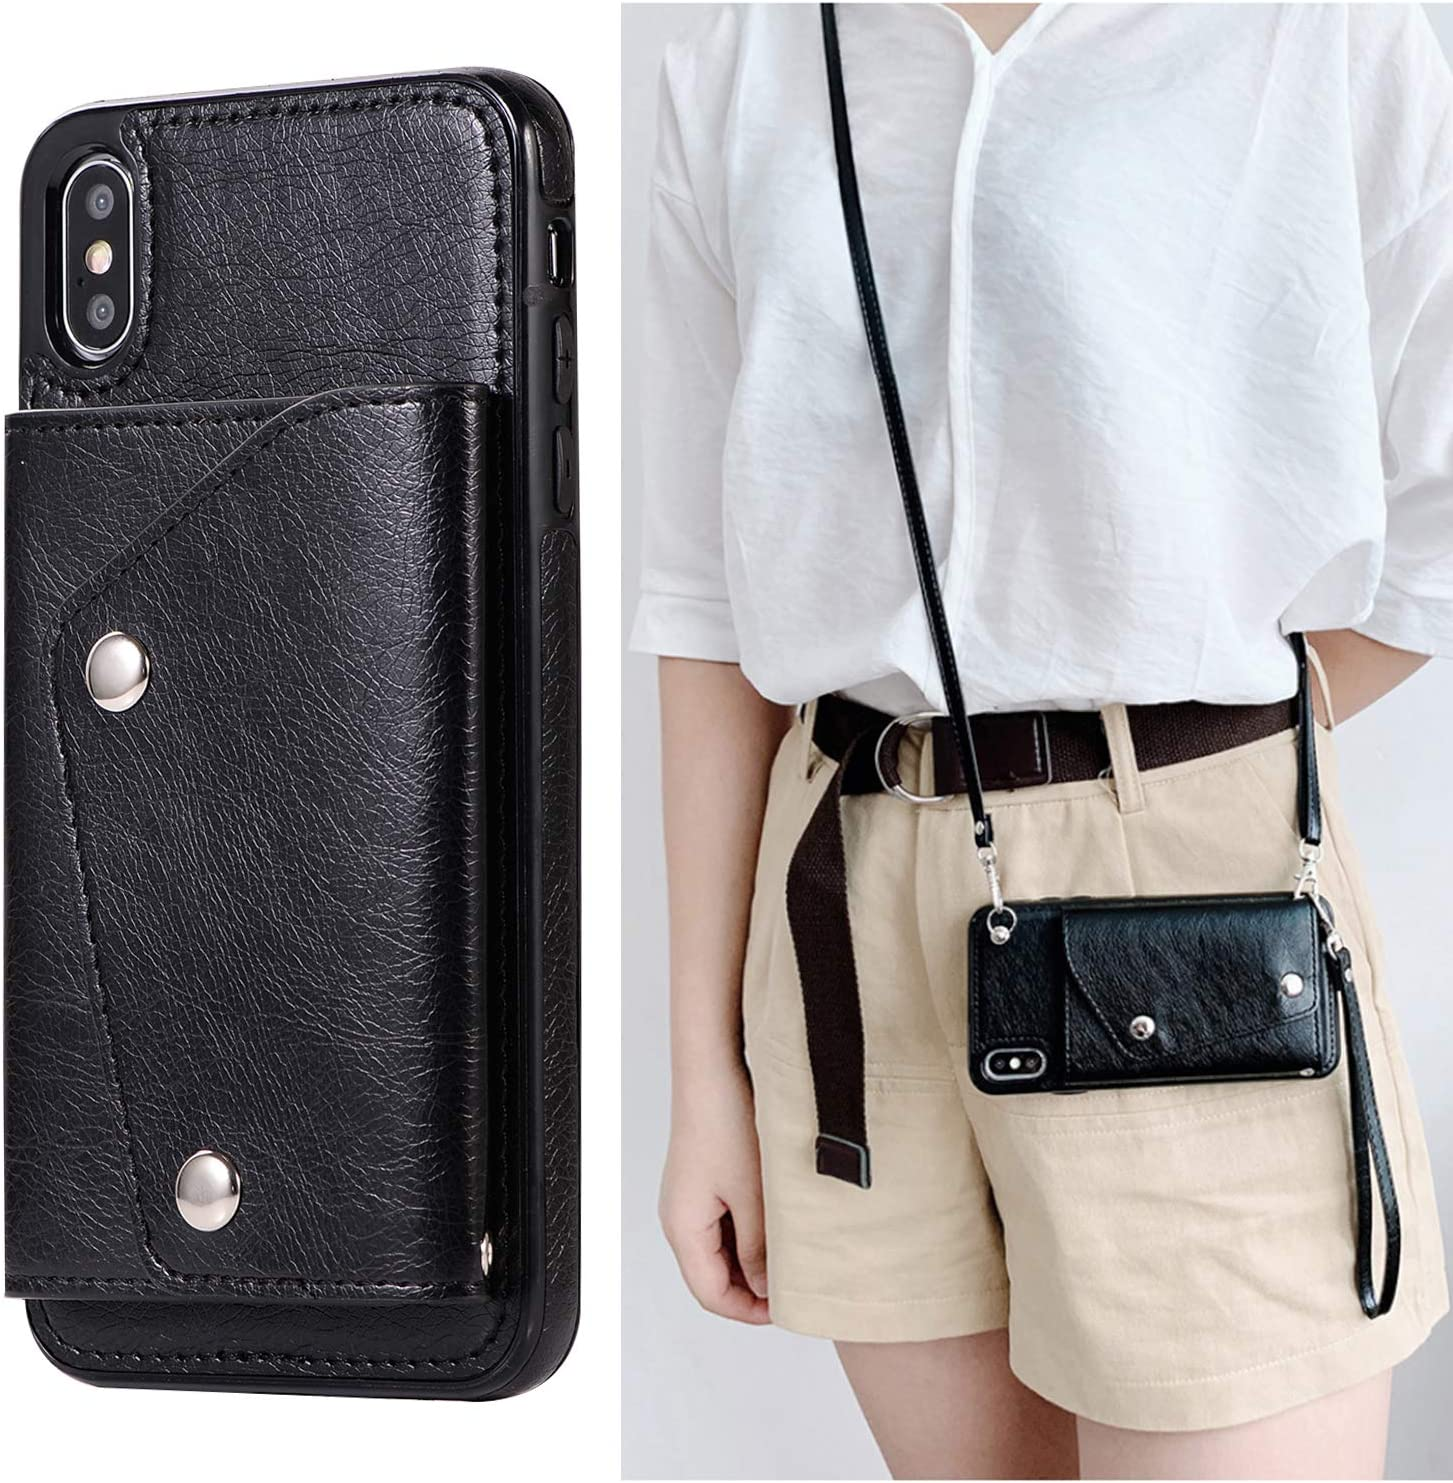 LUVI for iPhone X/XS Wallet Case with Crossbody Neck Strap Lanyard Handbag Hand Wrist Strap Protective Cover with Credit ID Card Holder Slot PU Leather Case for iPhone X/XS Black